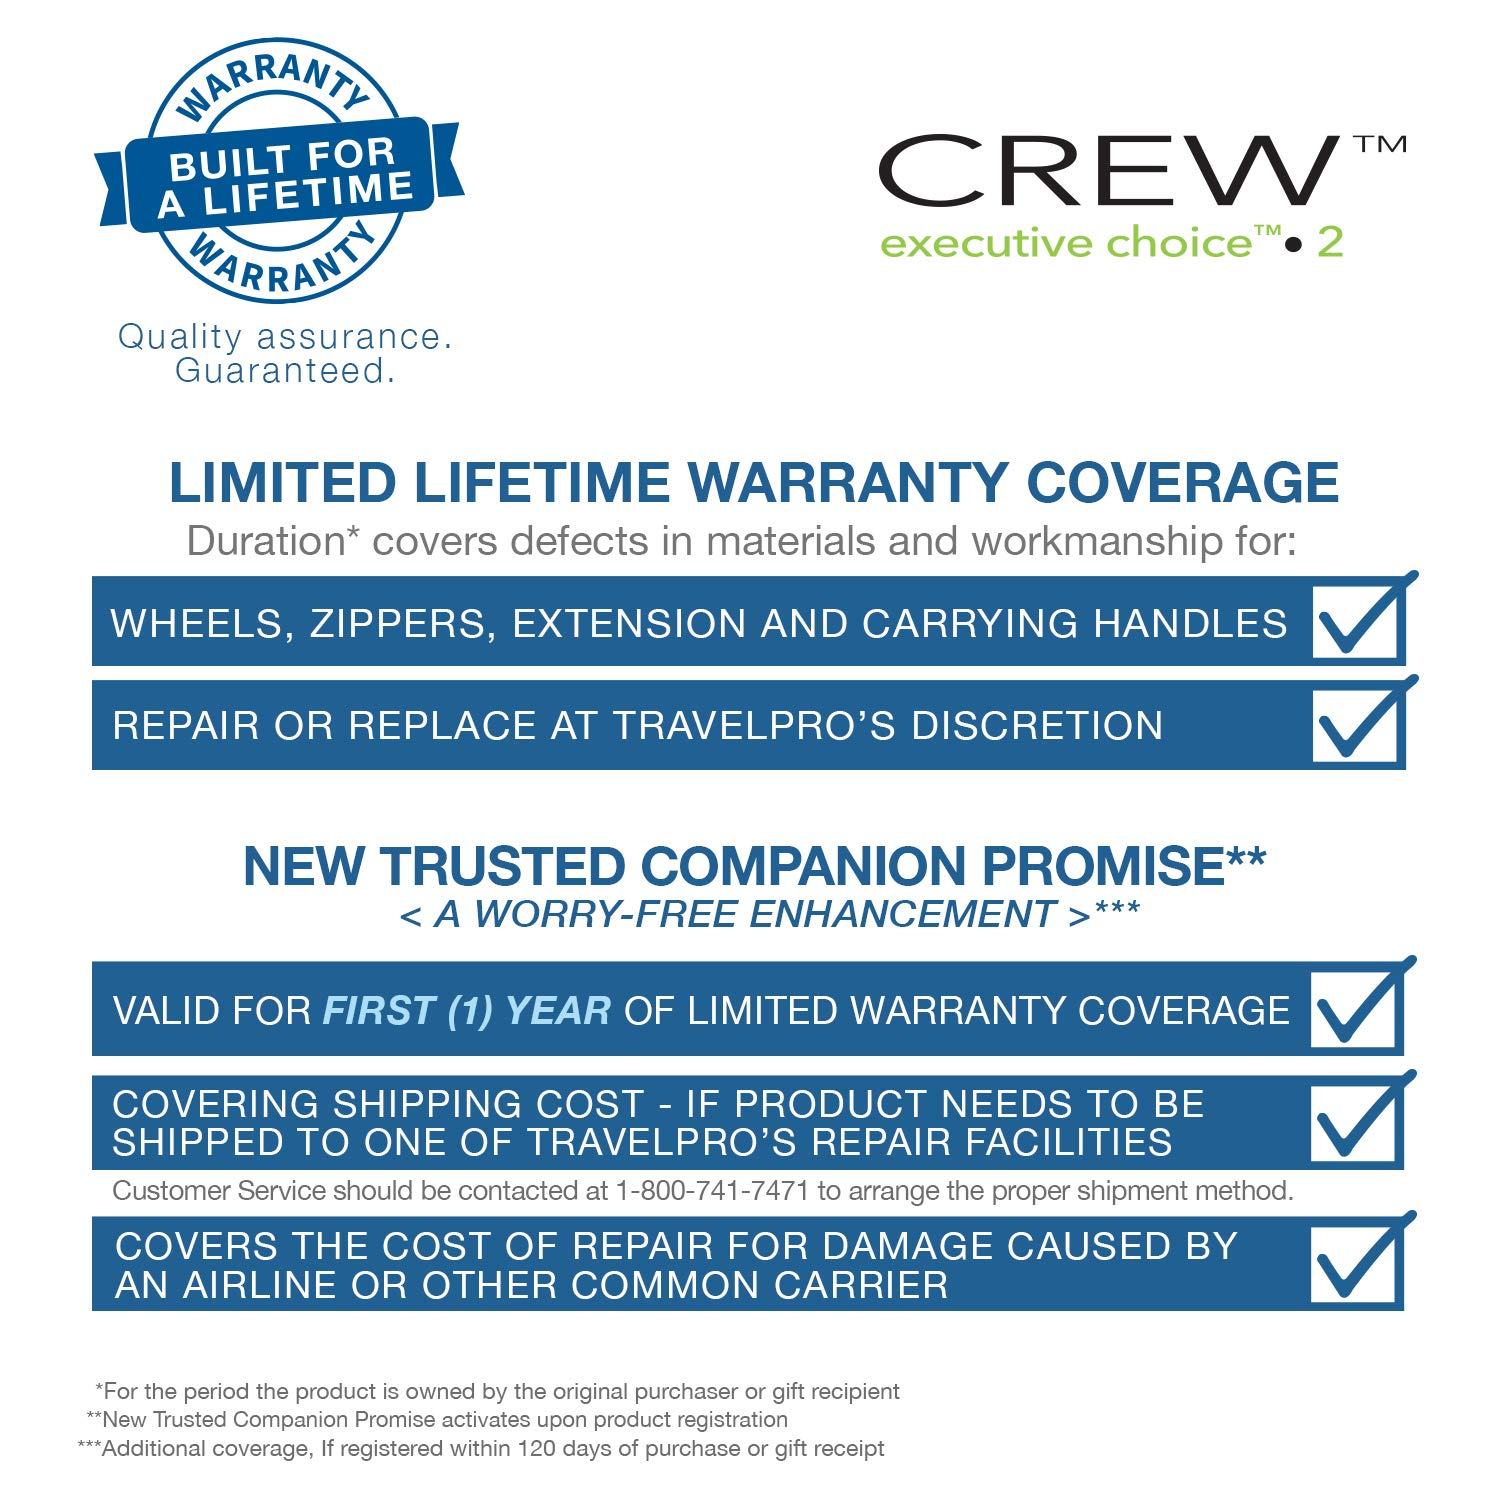 Travelpro Crew Executive Choice 2 Pilot Under-Seat Brief Bag, 16-in with USB port by Travelpro (Image #7)